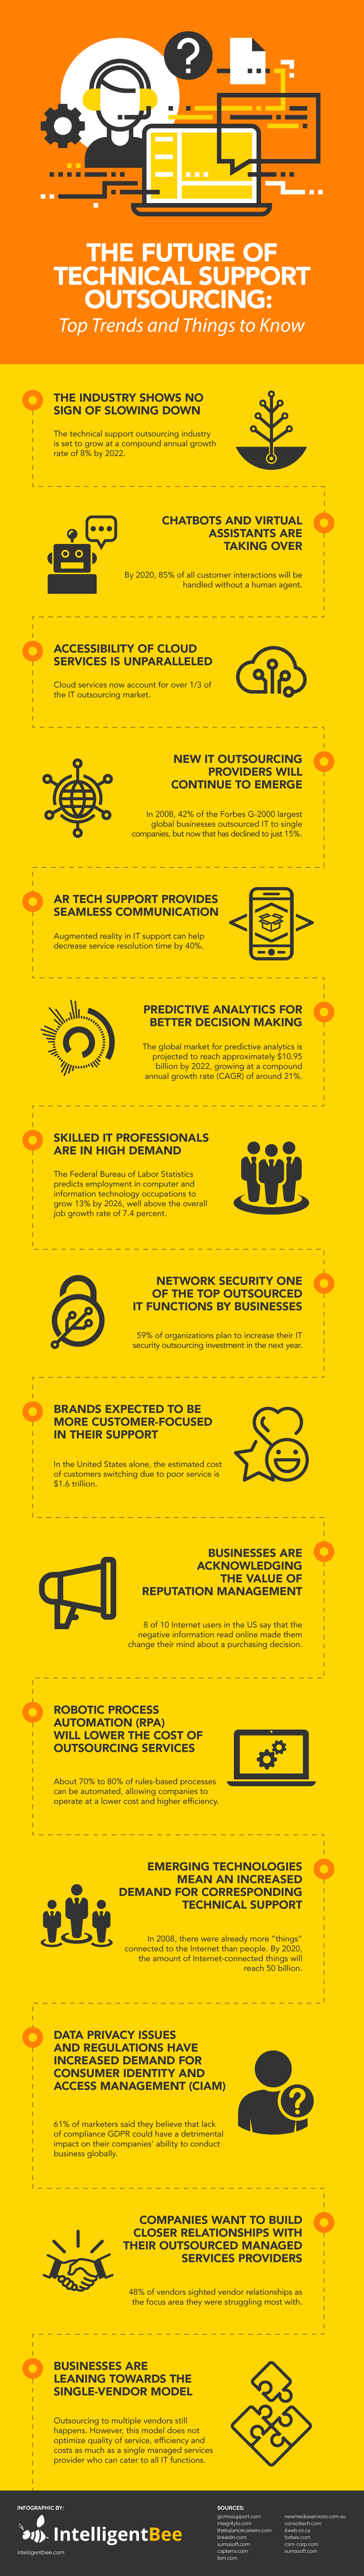 The-Future-Of-Technical-Support-Outsourcing-Infographic